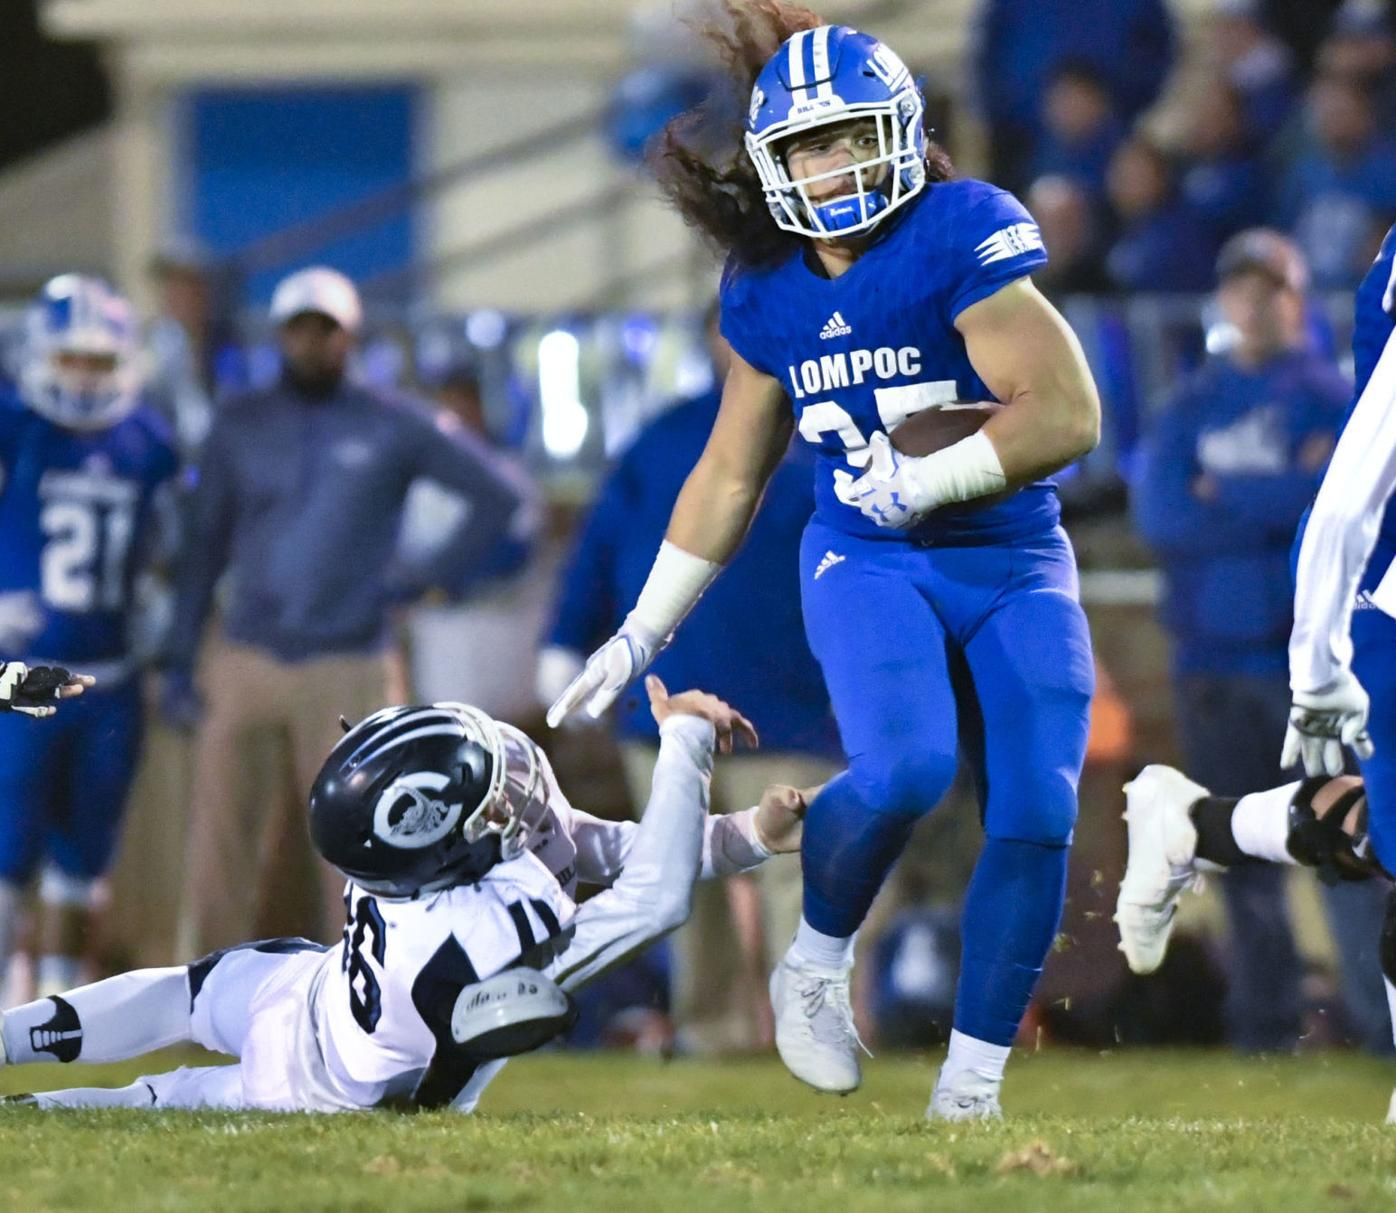 Player of the Decade: Toa Taua, Lavon Coleman, Caleb Thomas and Mike McCoy advance to regional semifinals